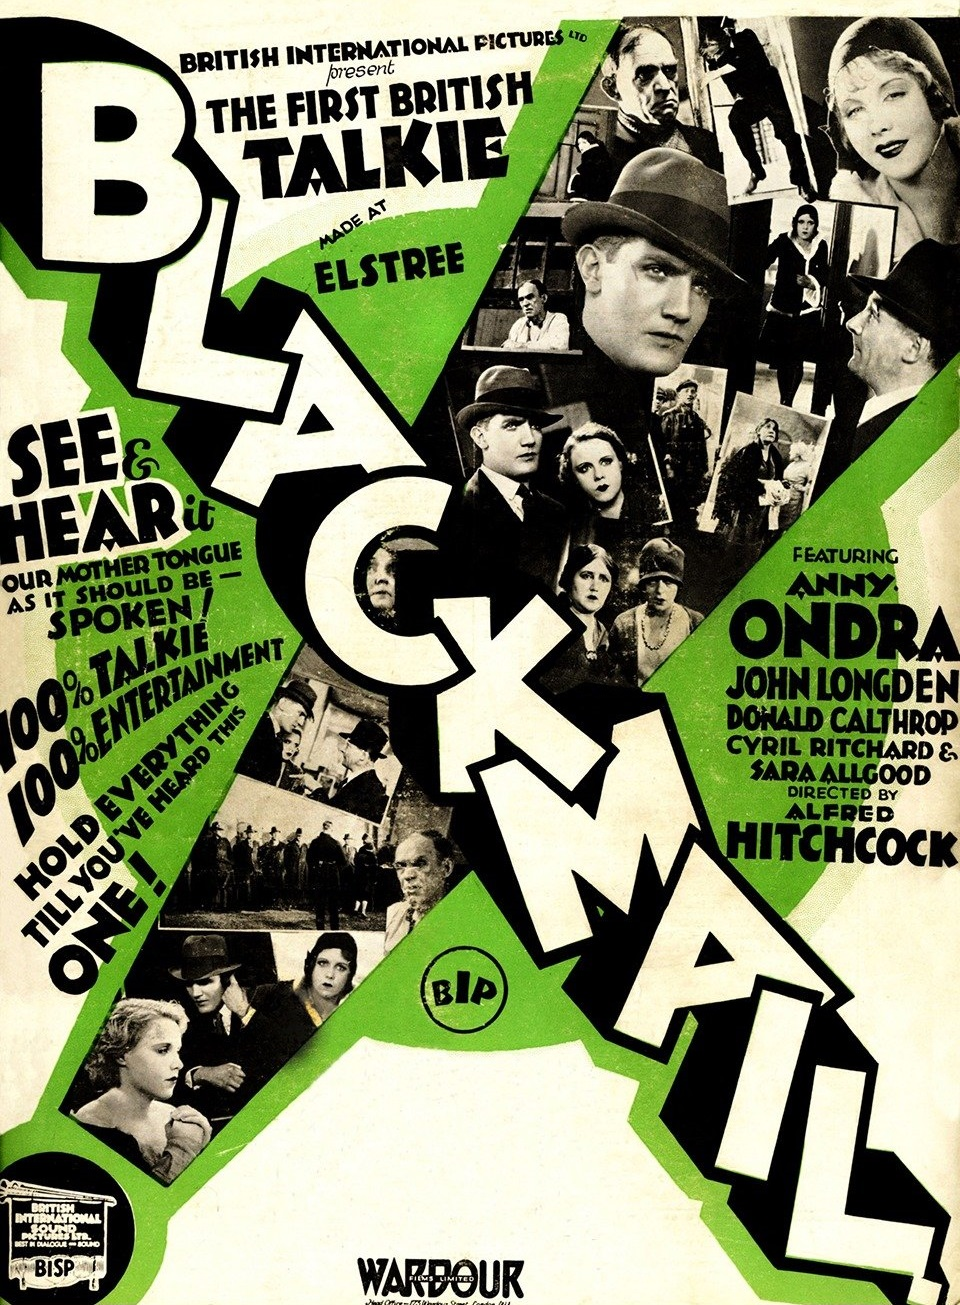 Blackmail (1929, dir. Alfred Hitchcock) UK Kine Weekly trade magazine ad, green